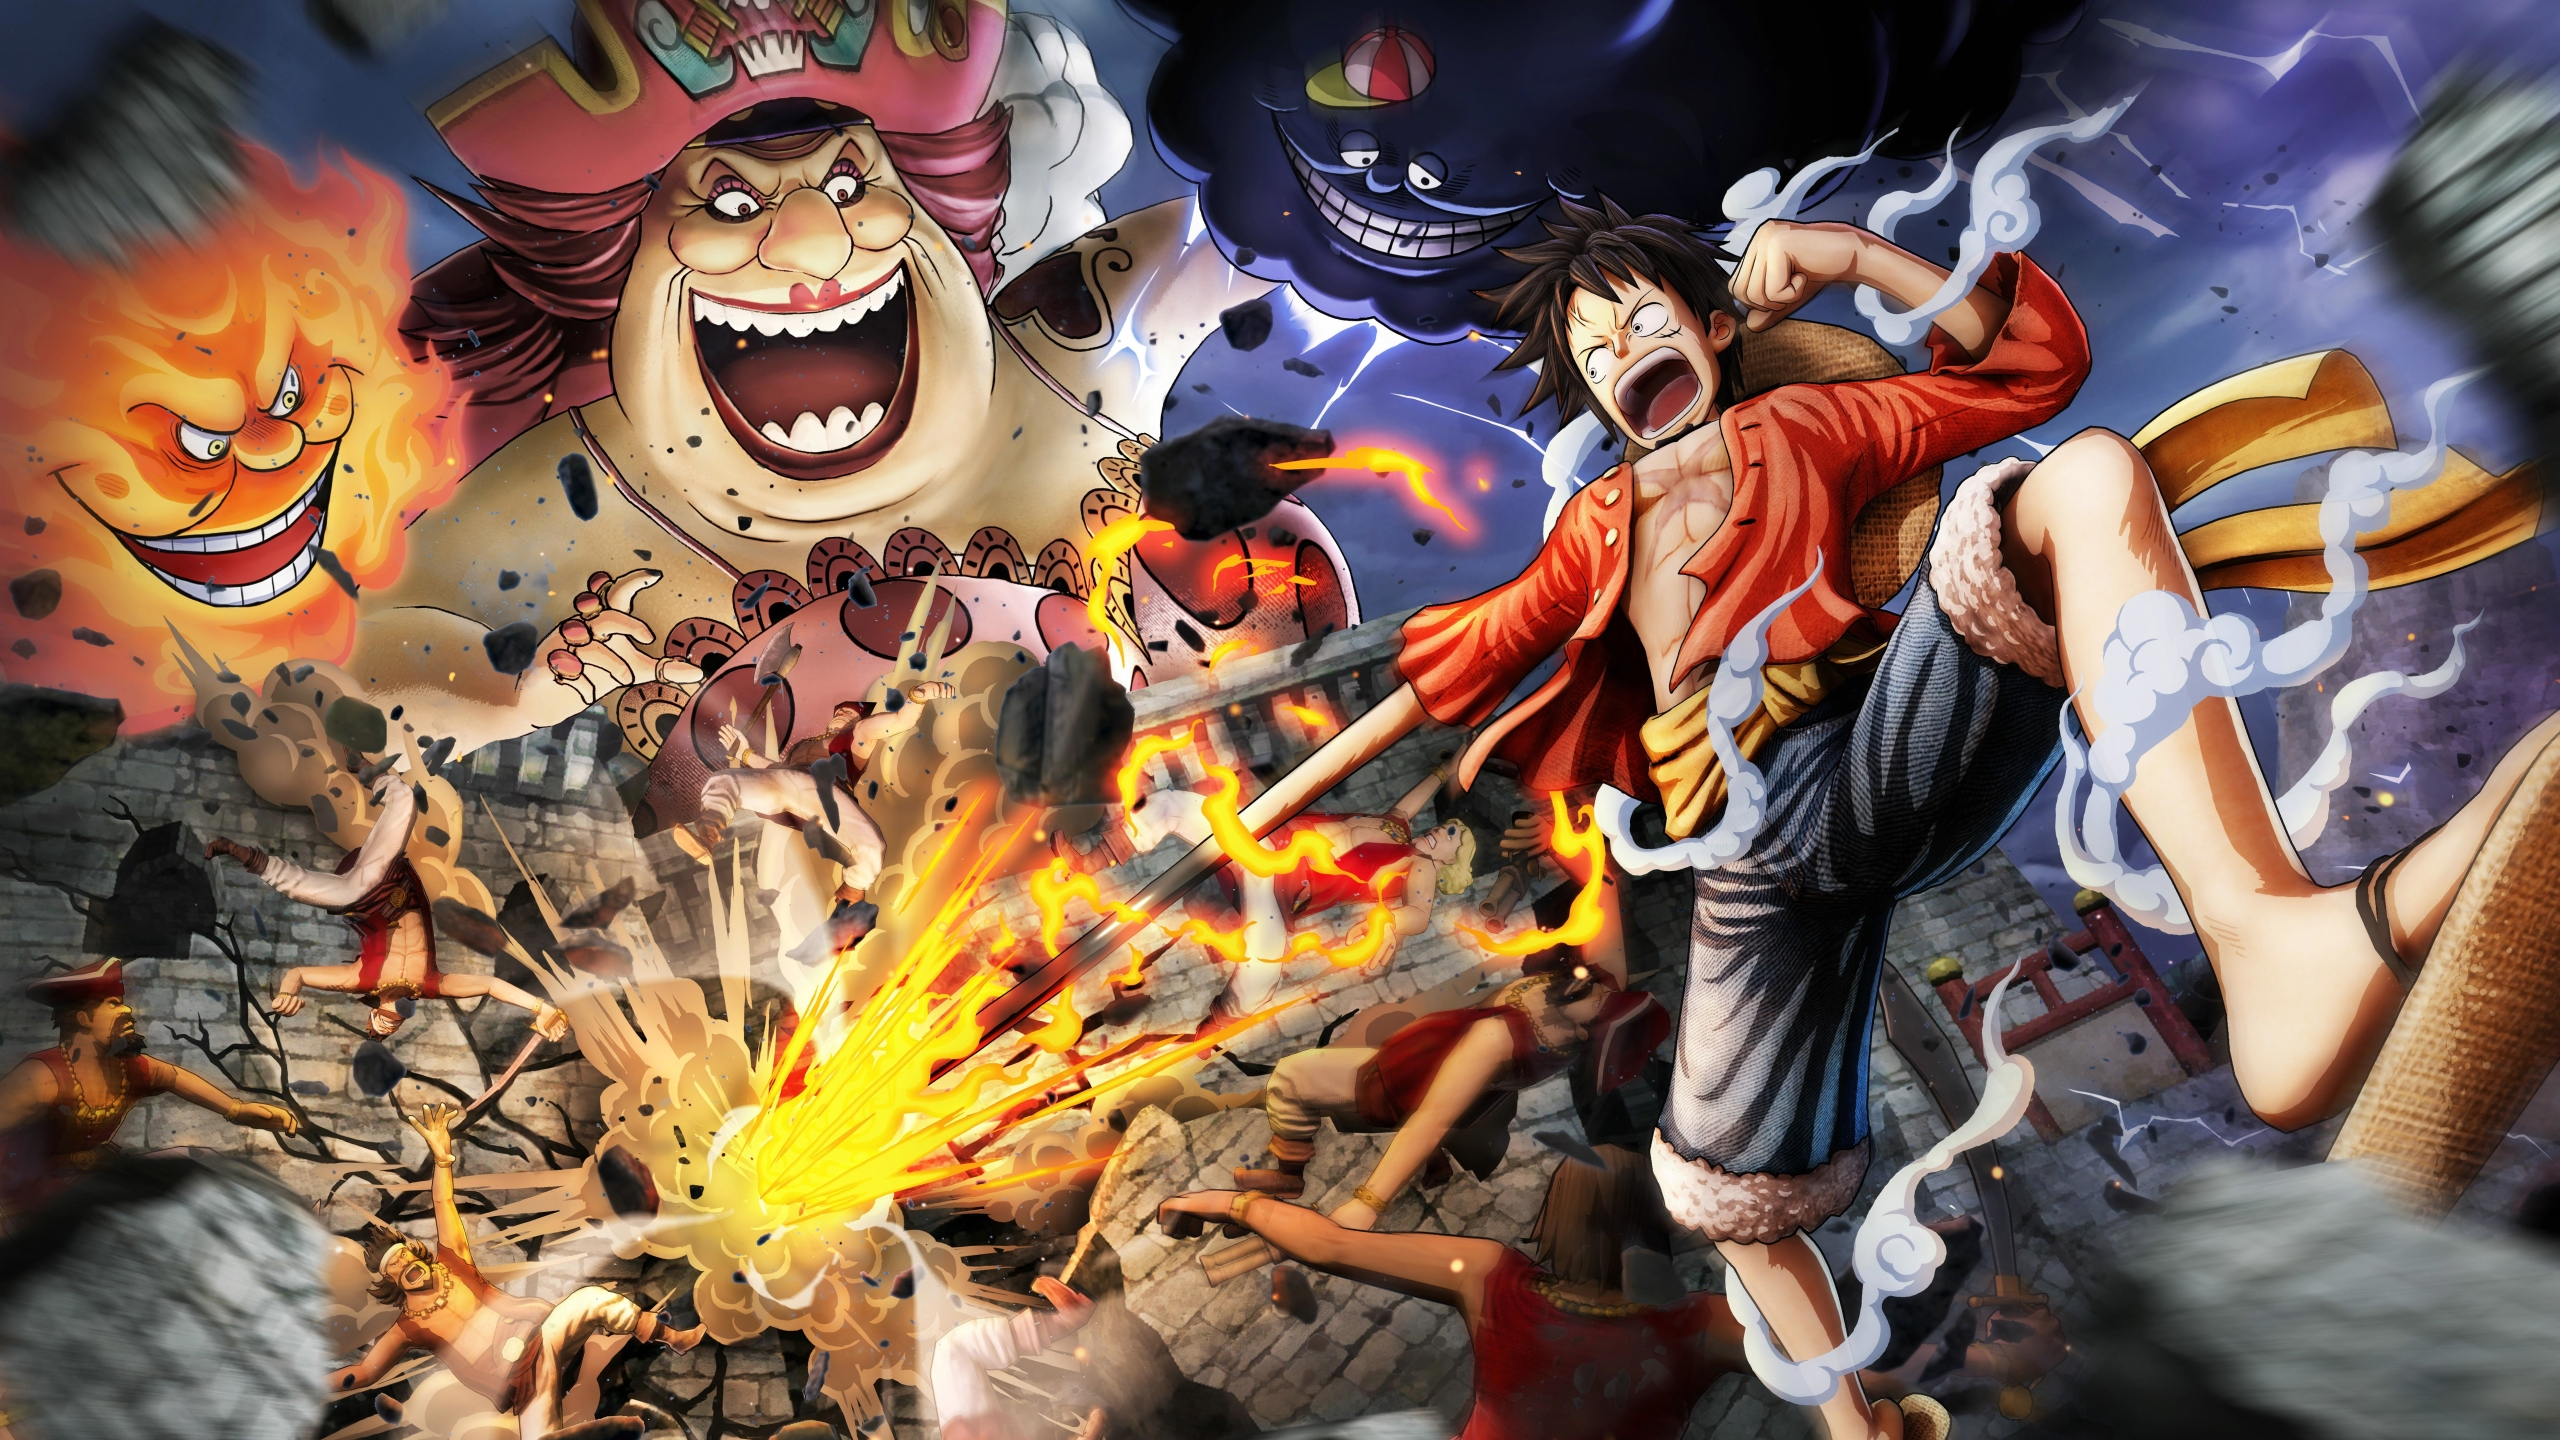 2560x1440 One Piece Pirate Warriors 1440p Resolution Wallpaper Hd Games 4k Wallpapers Images Photos And Background